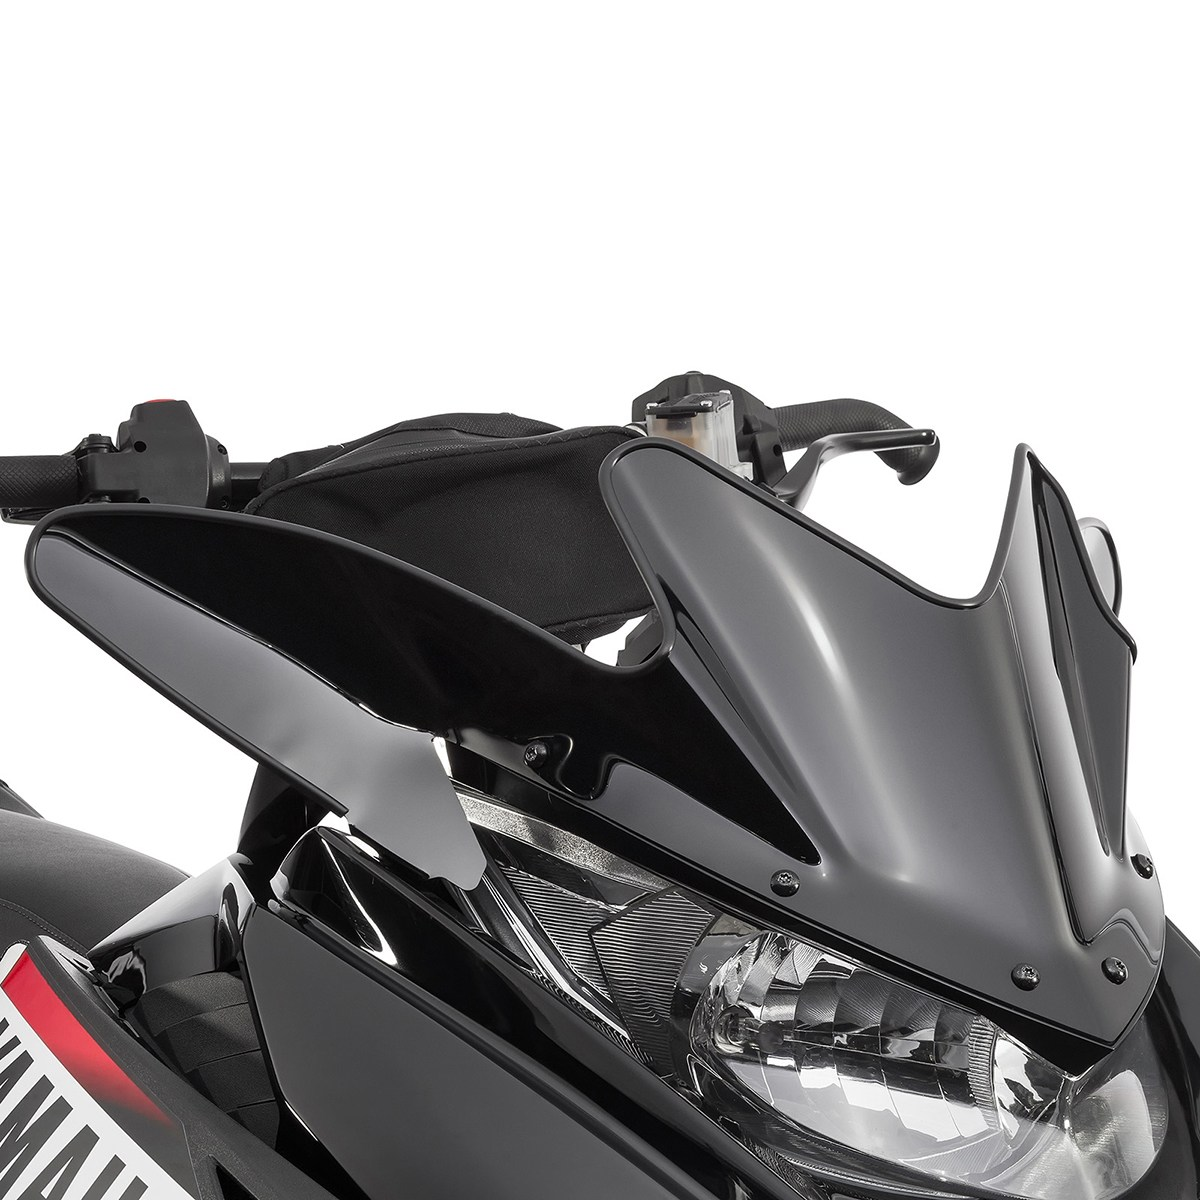 Product details for Yamaha sx viper windshield